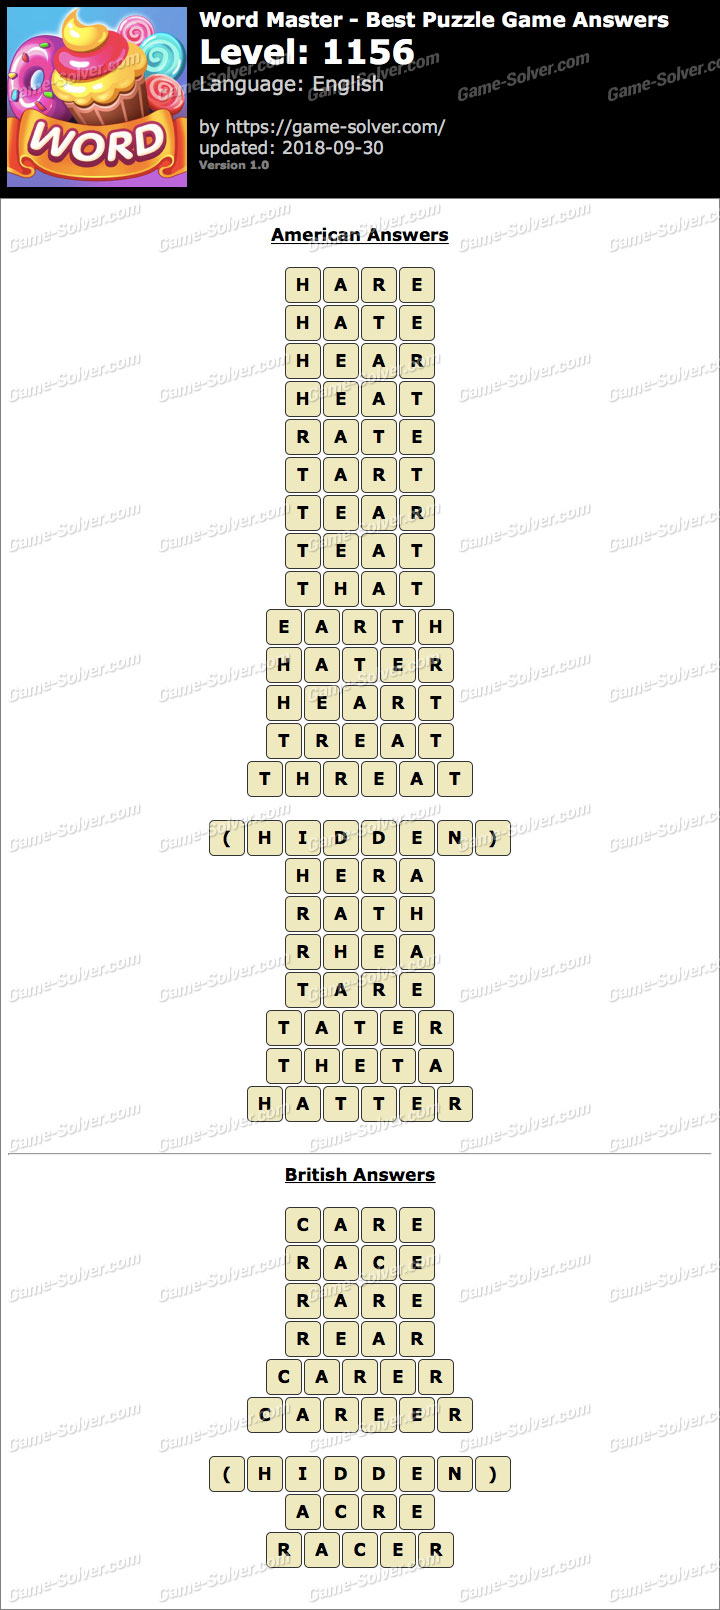 Word Master-Best Puzzle Game Level 1156 Answers